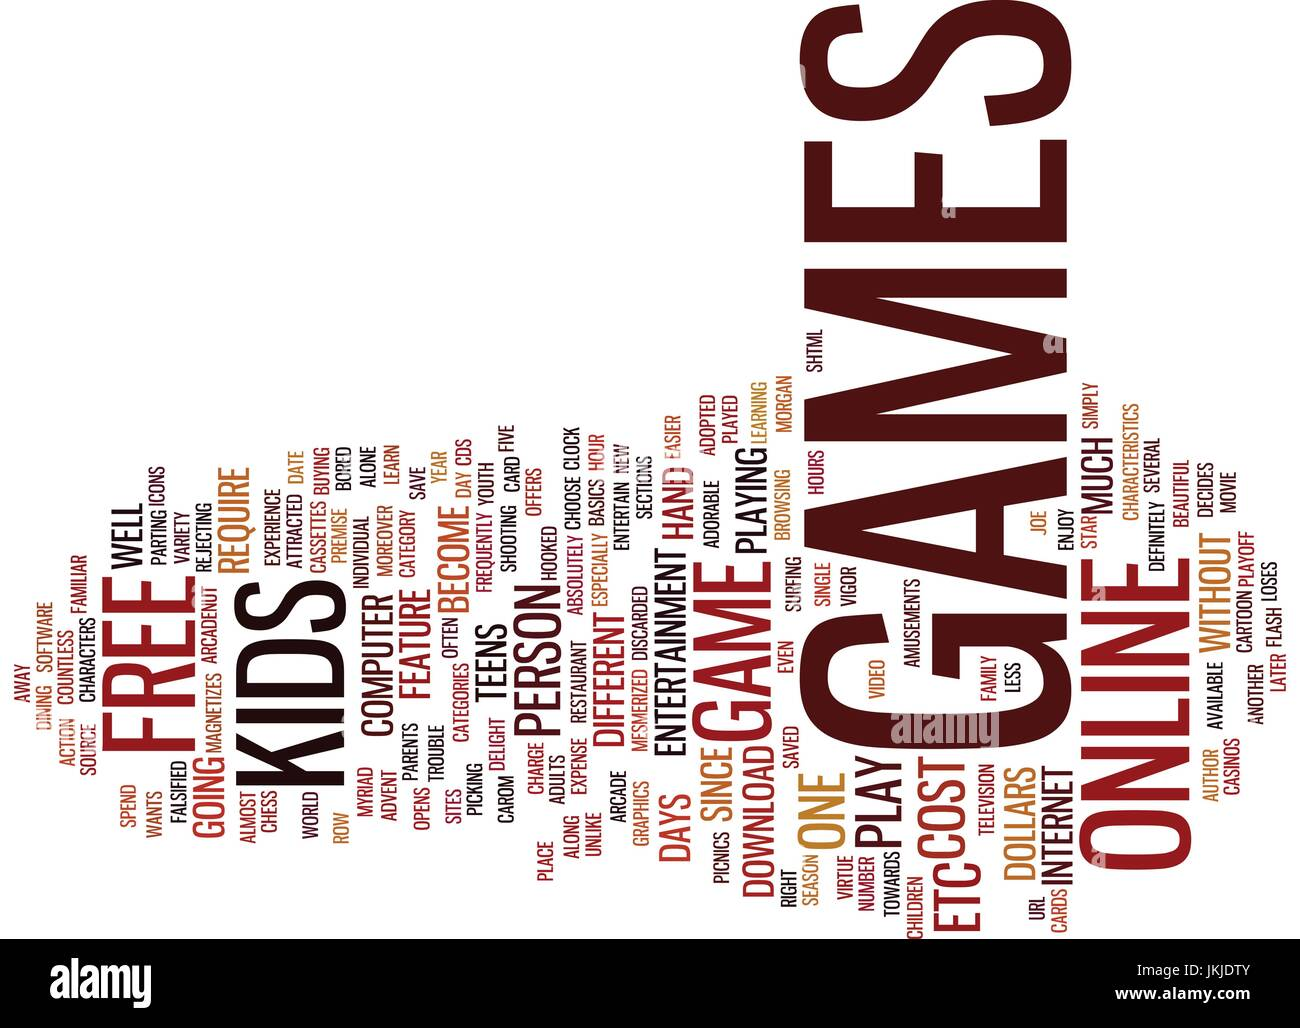 FREE GAMES Text Background Word Cloud Concept Stock Vector